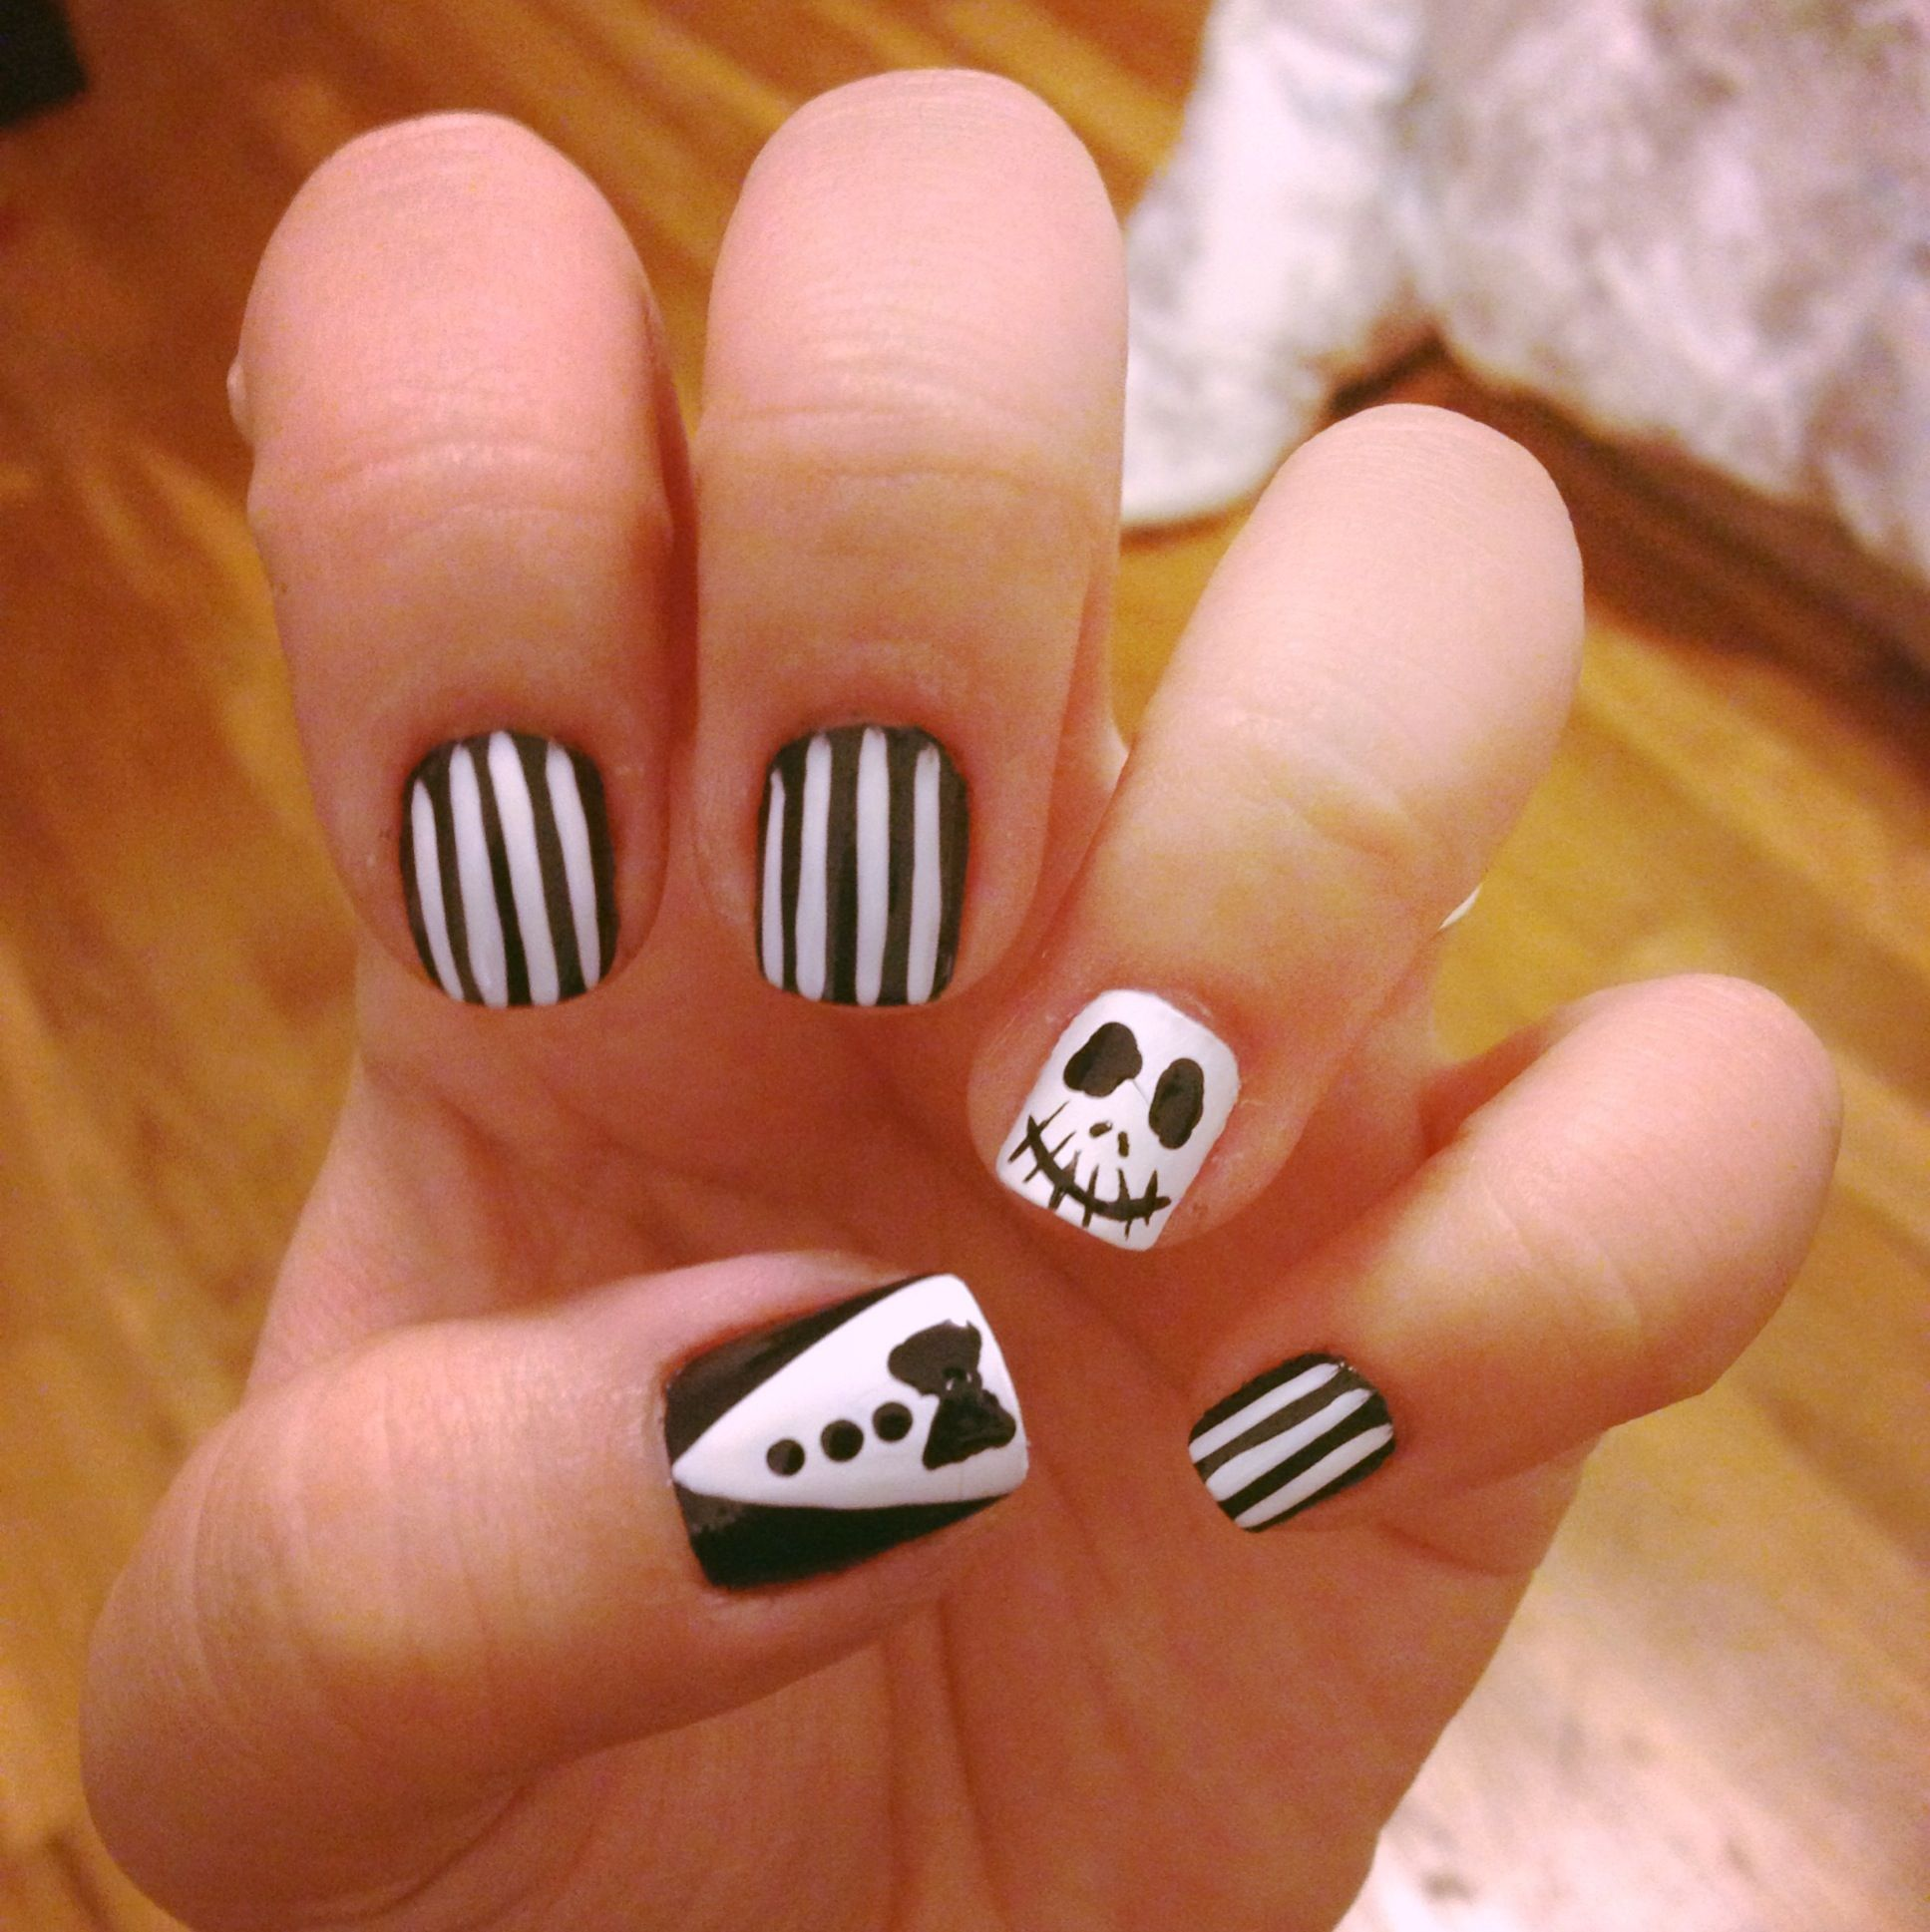 About baby boomer nail art tutorial by nded on pinterest nail art - Jack Skellington Nail Art Simplychitah